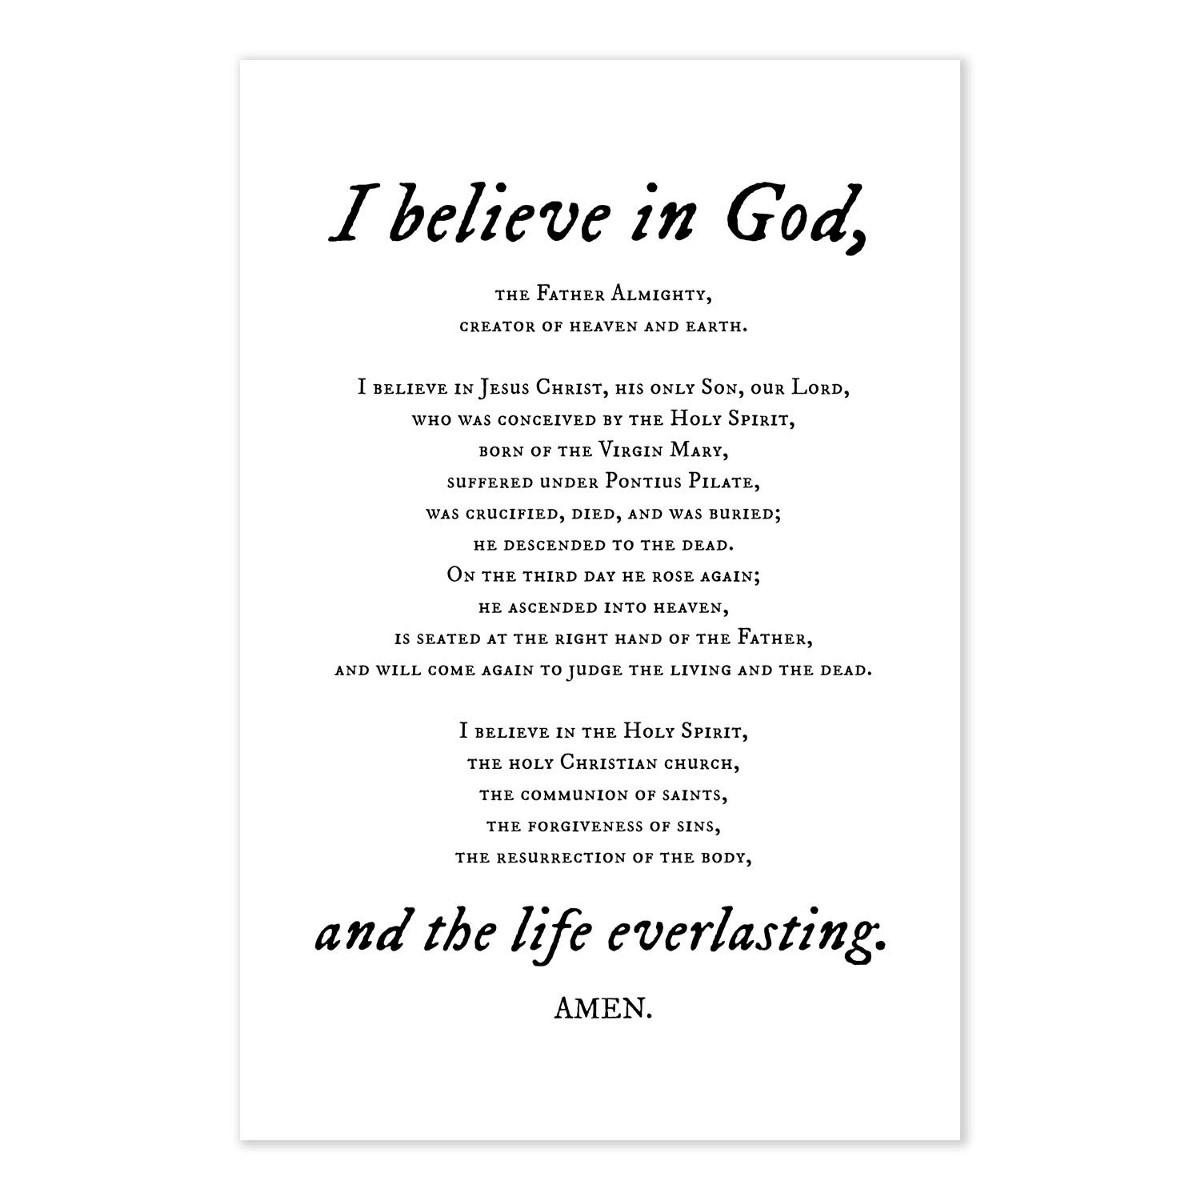 I Believe Help My Unbelief The Struggle I Have Between God And Me Mark 9 14 29 By Ruth Baker Medium I believe that literature can prove him right. i believe help my unbelief the